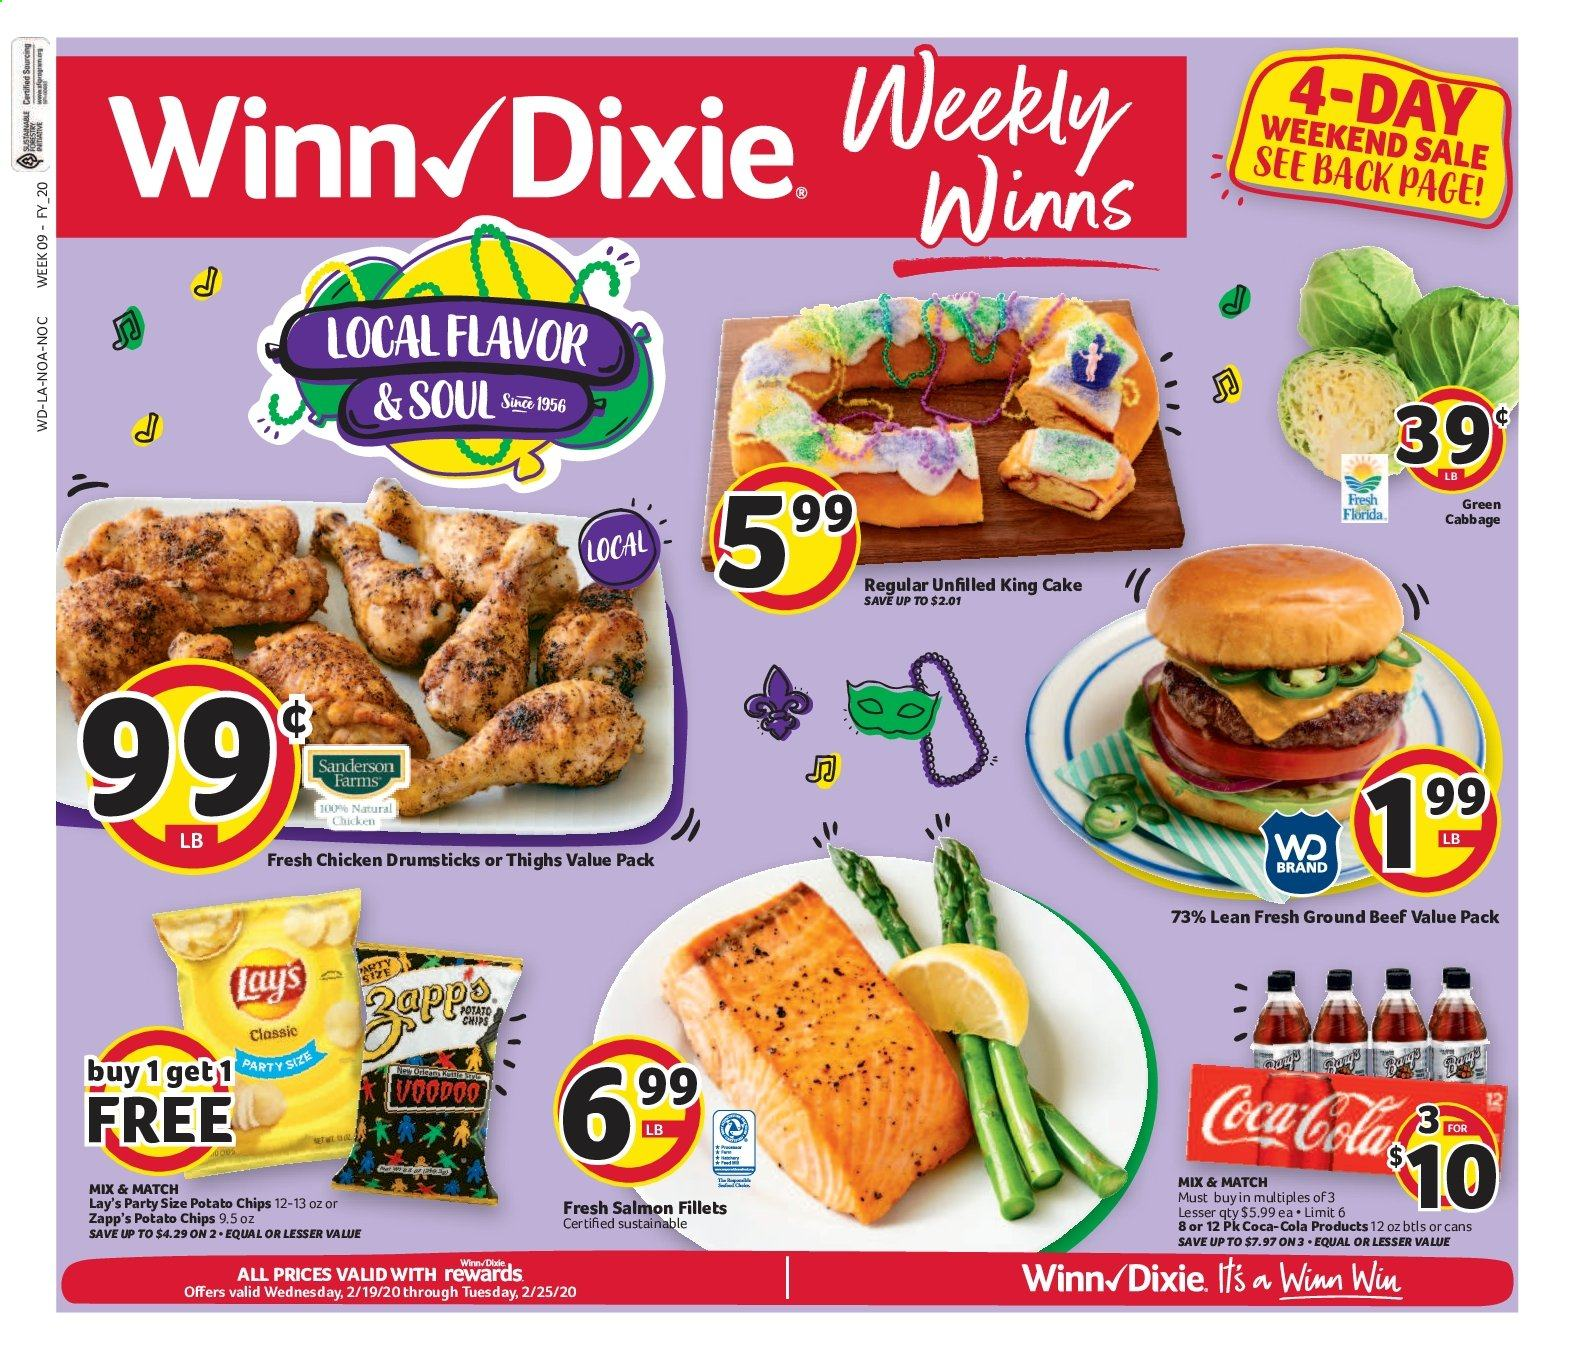 Winn Dixie Flyer - 02.19.2020 - 02.25.2020 - Sales products - cabbage, cake, chicken, chicken legs, beef meat, ground beef, salmon, potato chips, chips, Lay's, Coca-Cola. Page 1.